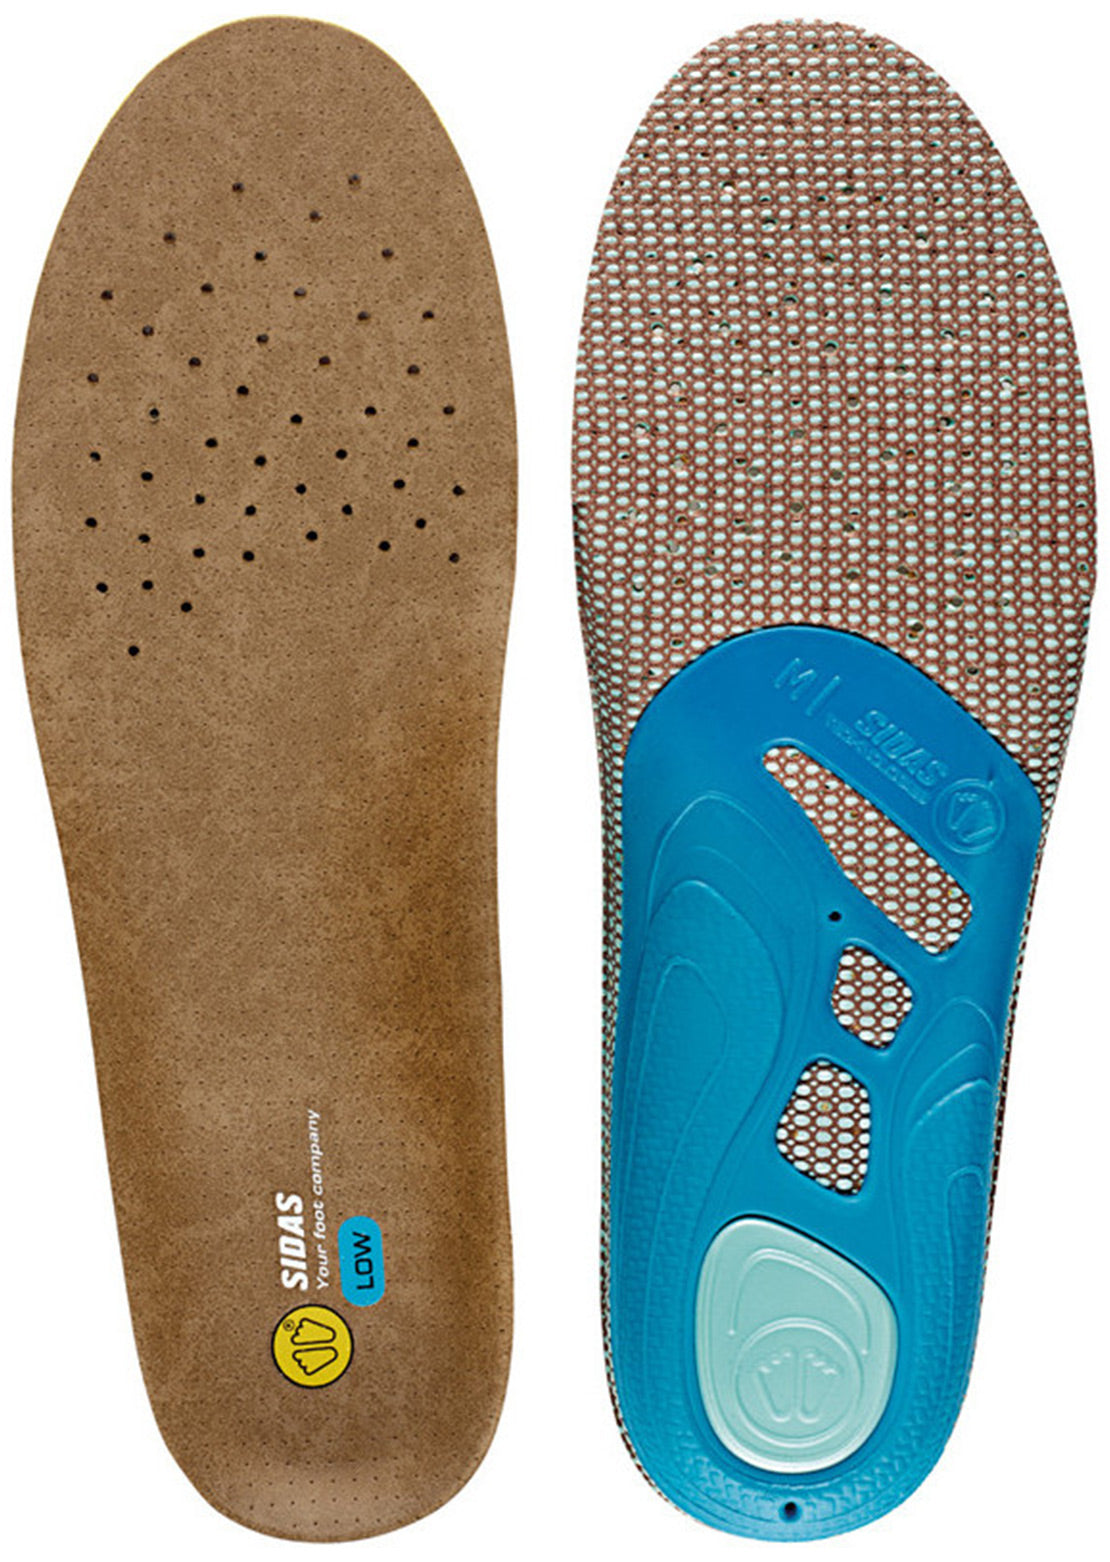 Sidas 3Feet Outdoor Low Insoles Blue